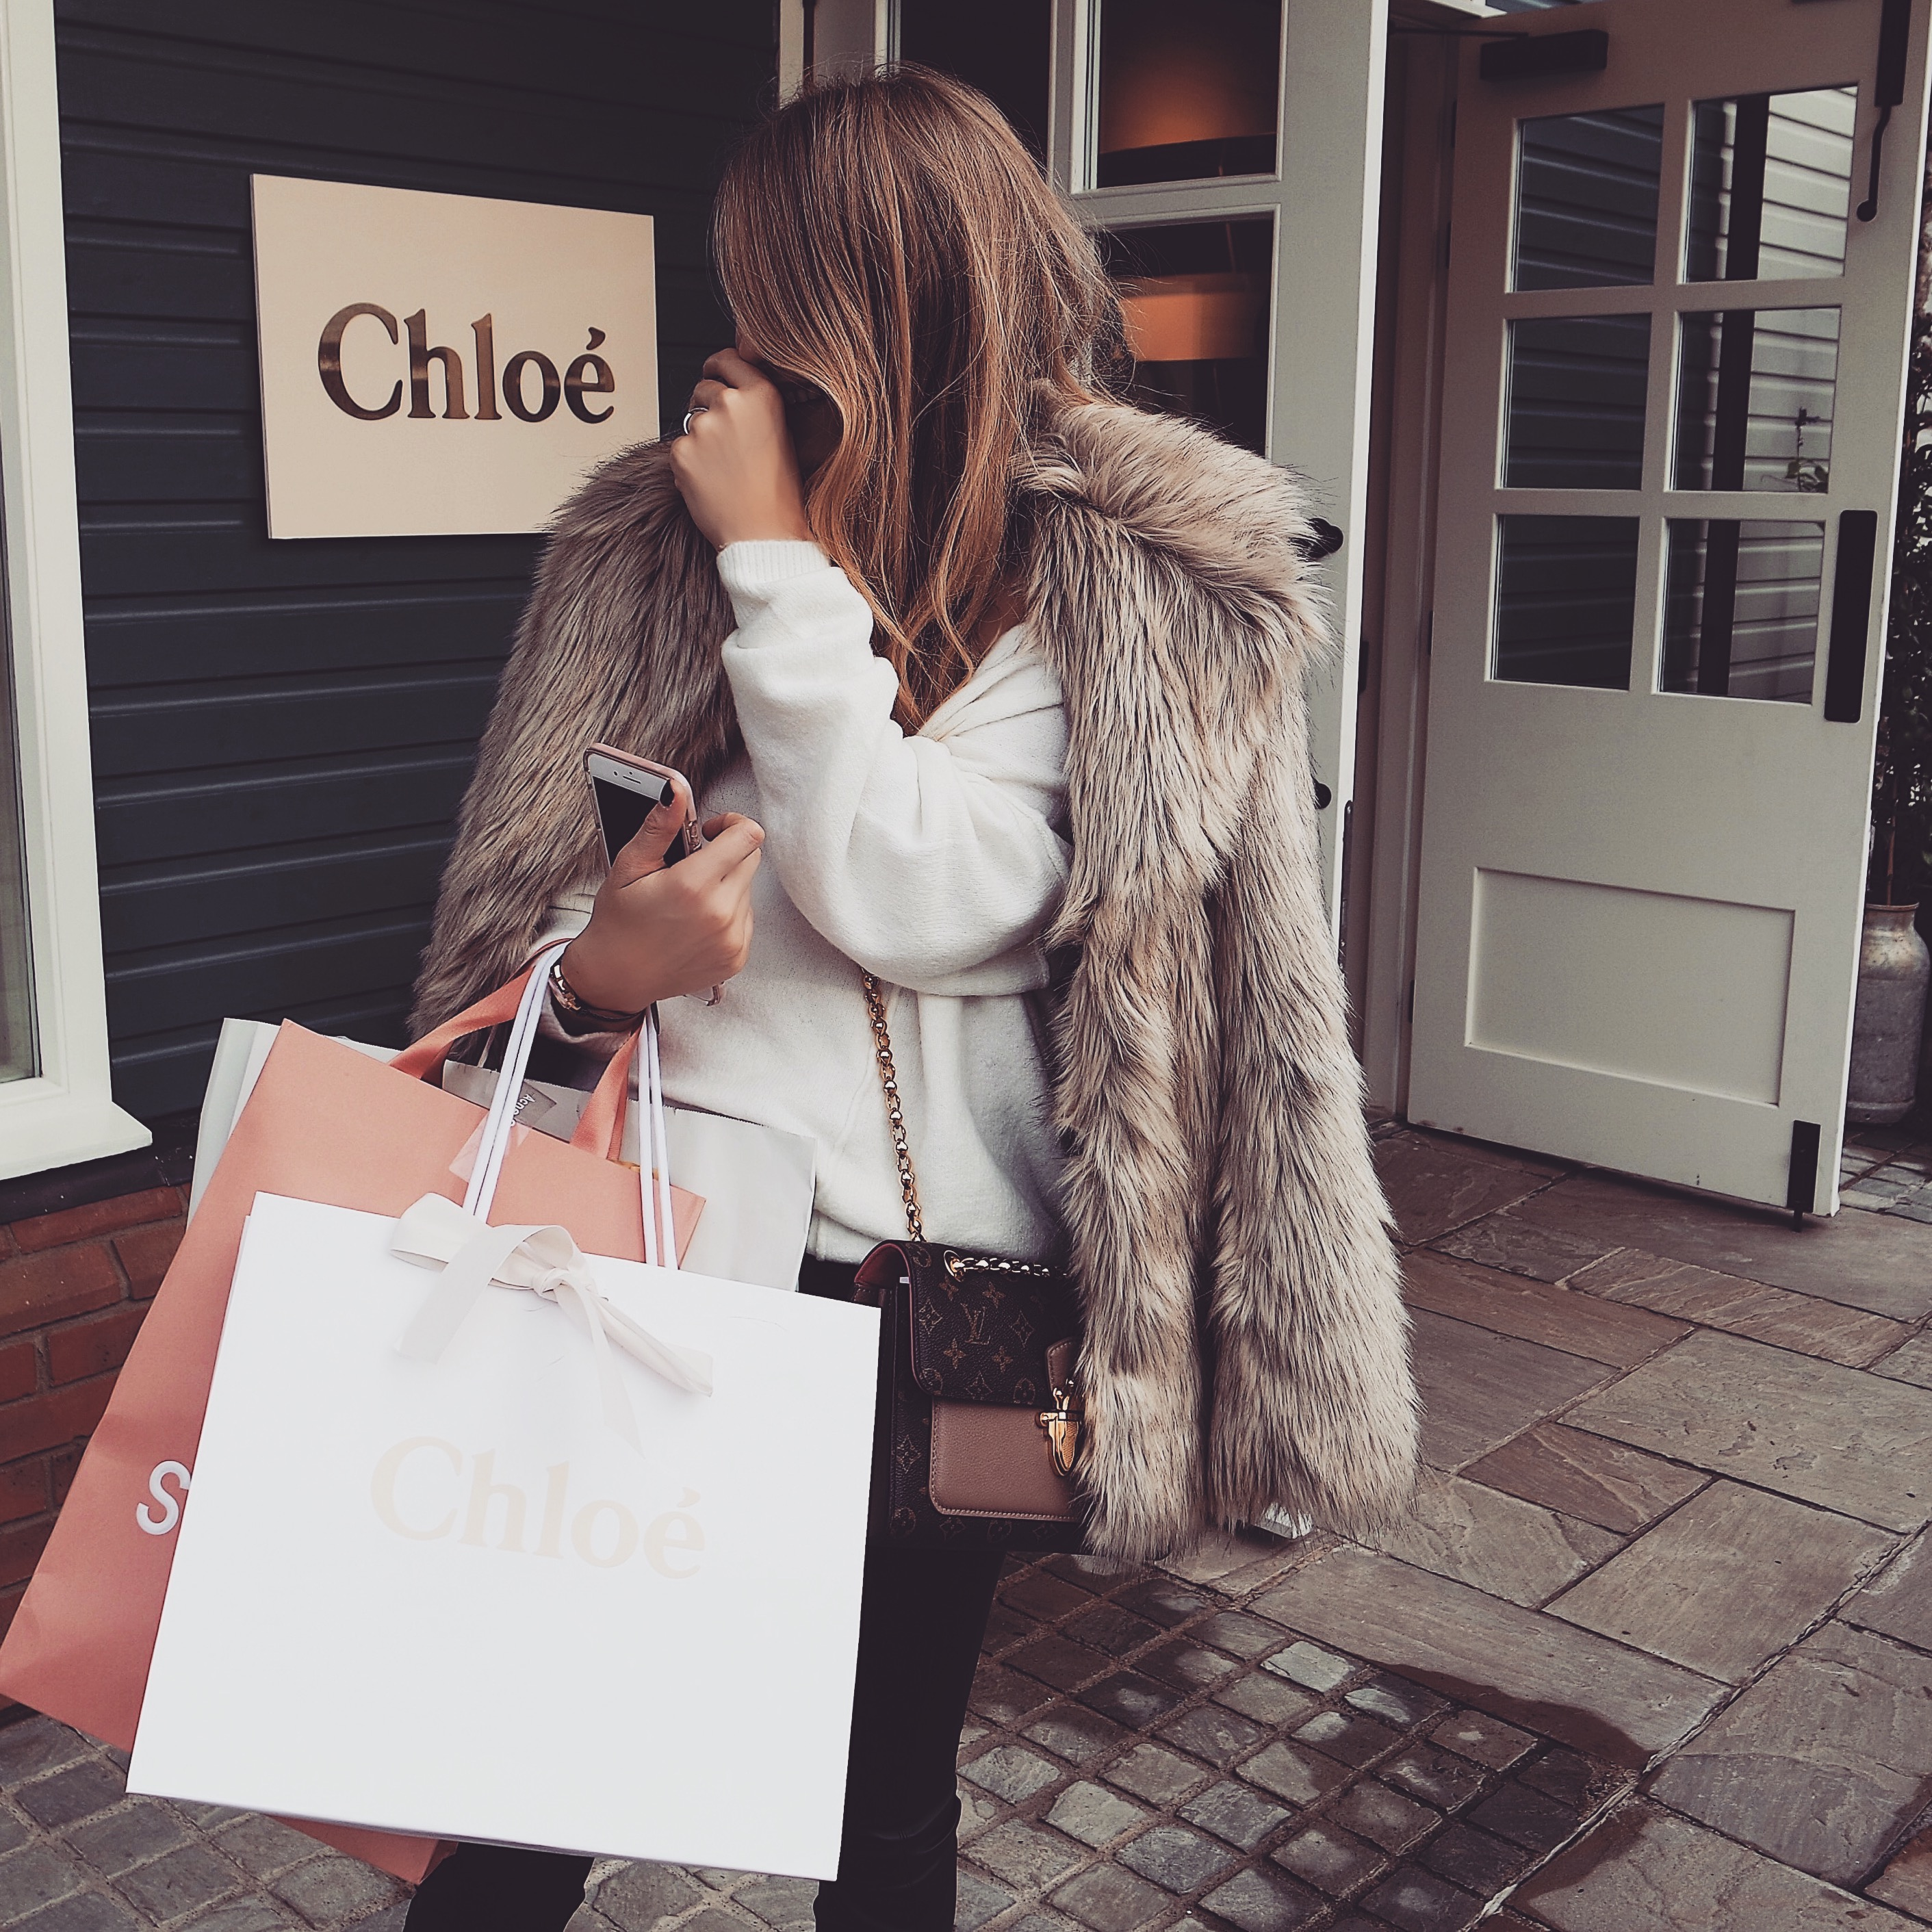 Bicester Village Chloe Outlet Store